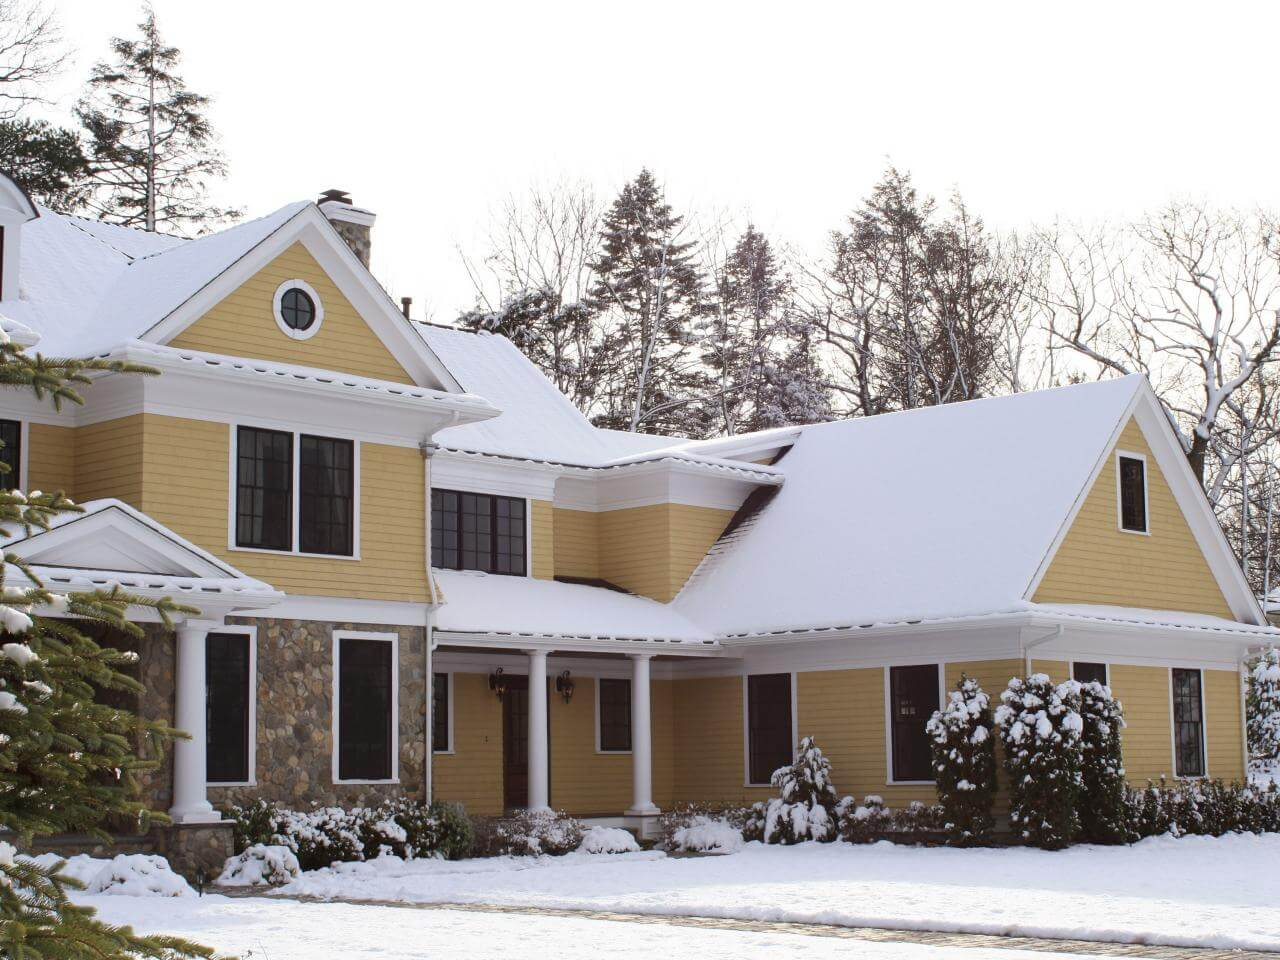 How to make your home winter-proof